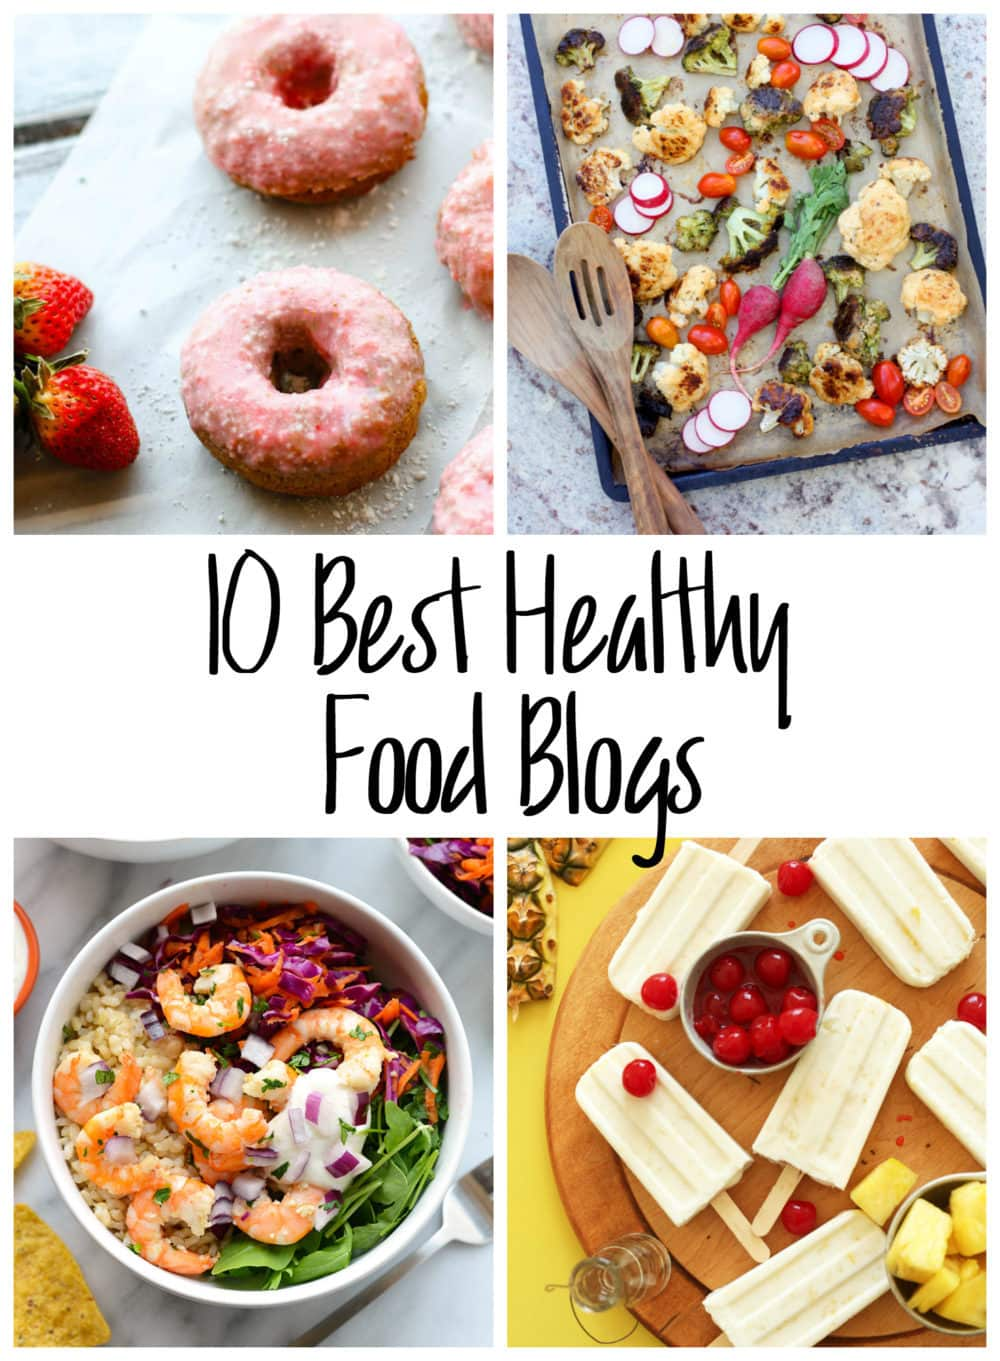 10 best healthy food blogs the fit cookie 10 best healthy food blogs thefitcookie food recipes fitfluential healthy forumfinder Gallery